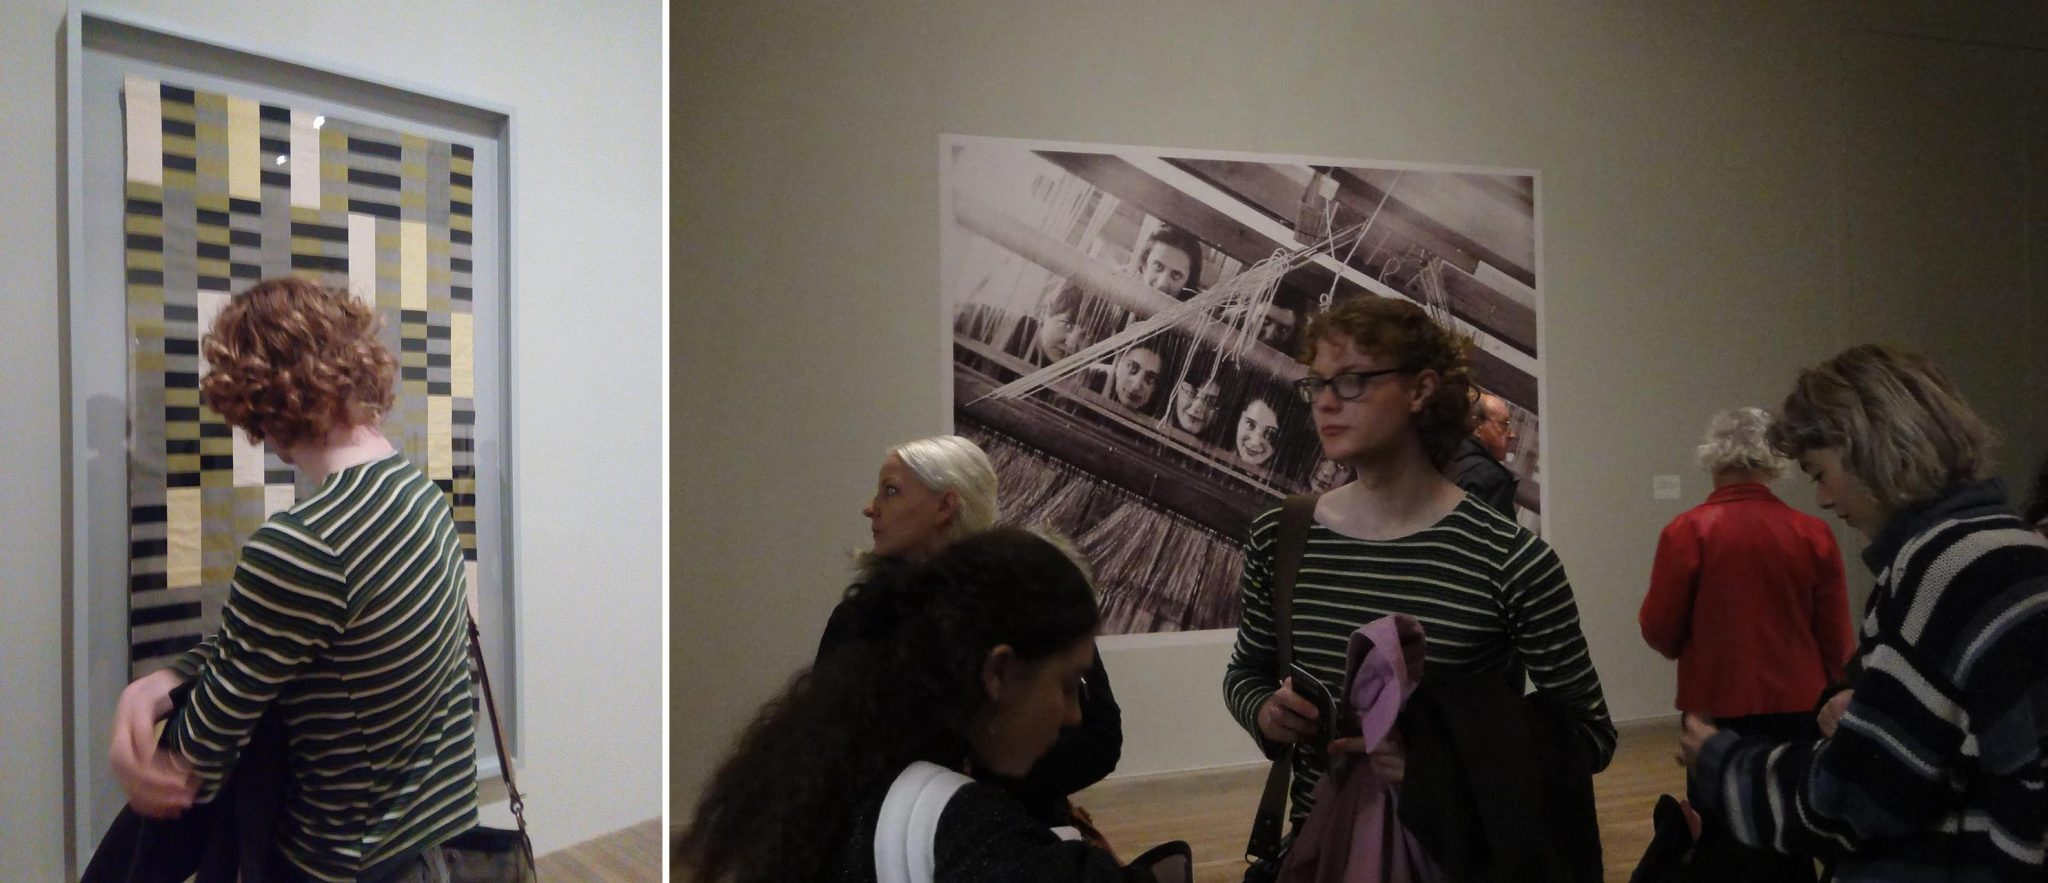 Students visited the Anni Albers exhibition at Tate Modern and received a curator's tour. Photos by Juan Bolivar.